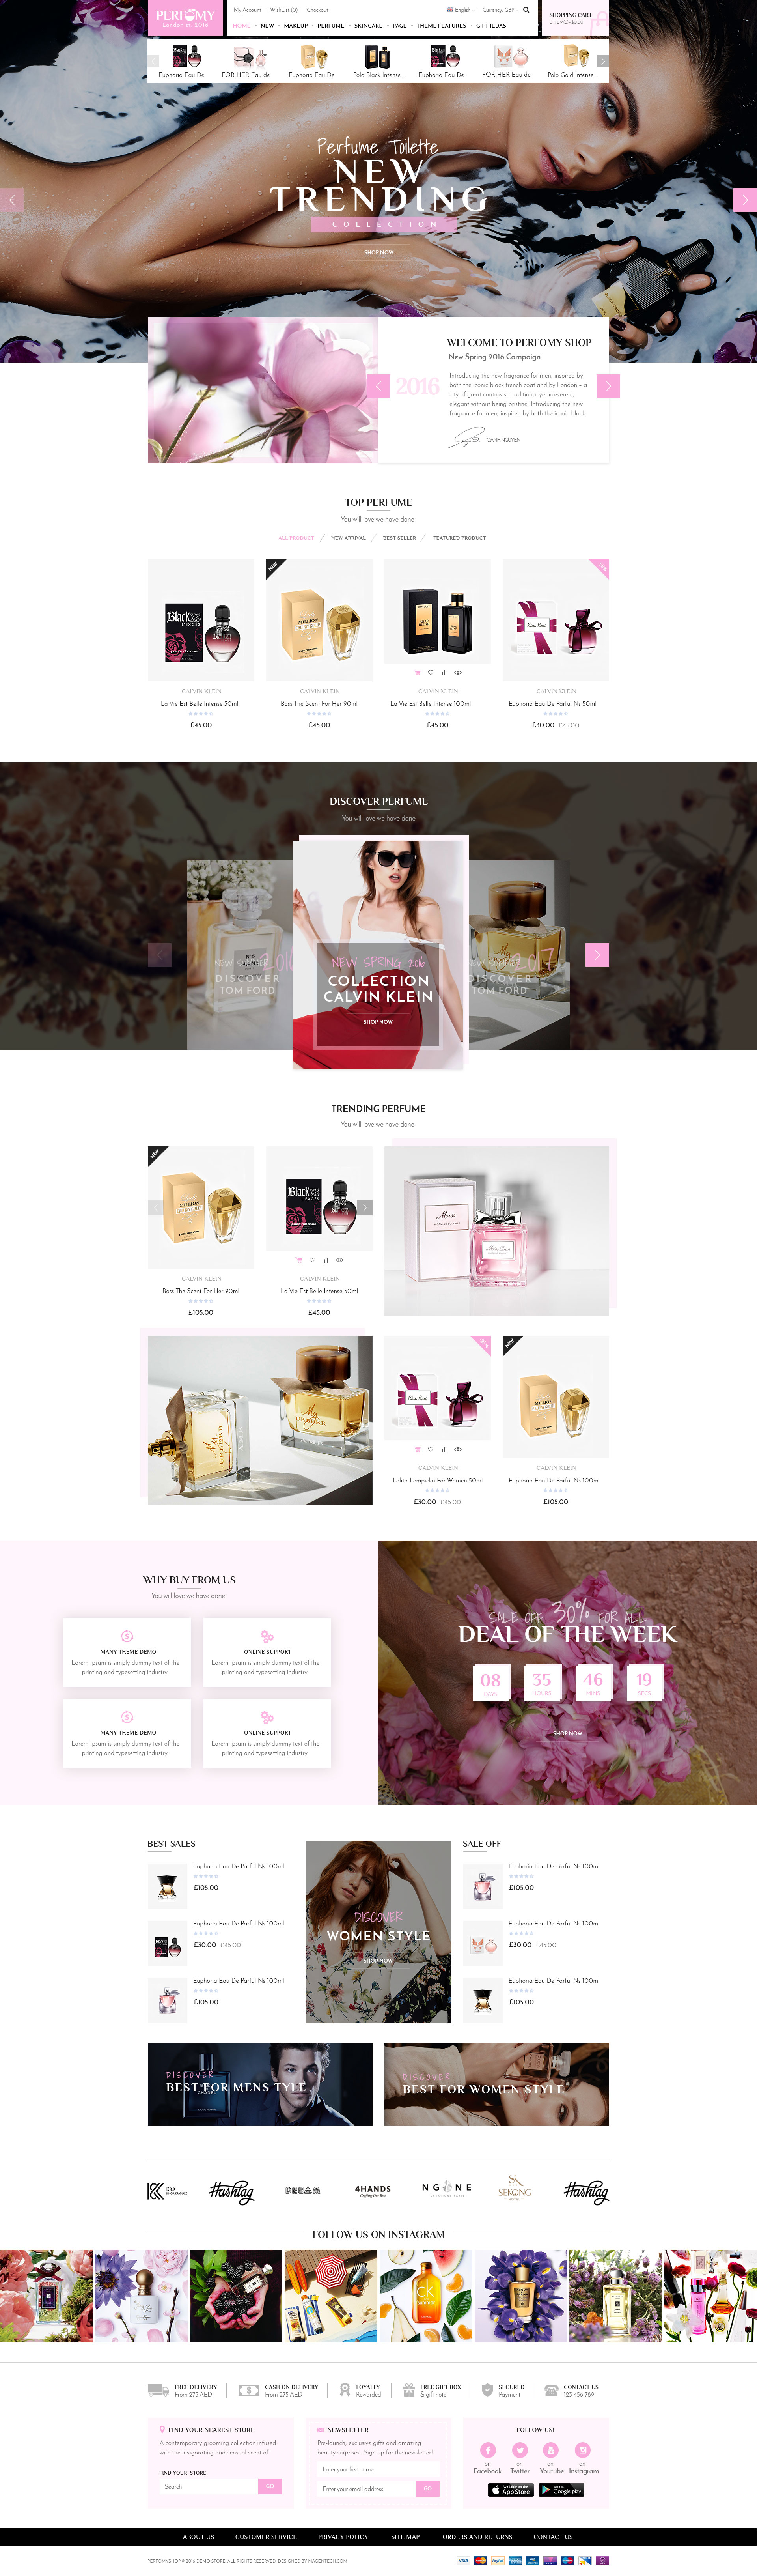 Perfomy Perfume Jewelry Accessories Psd Template By